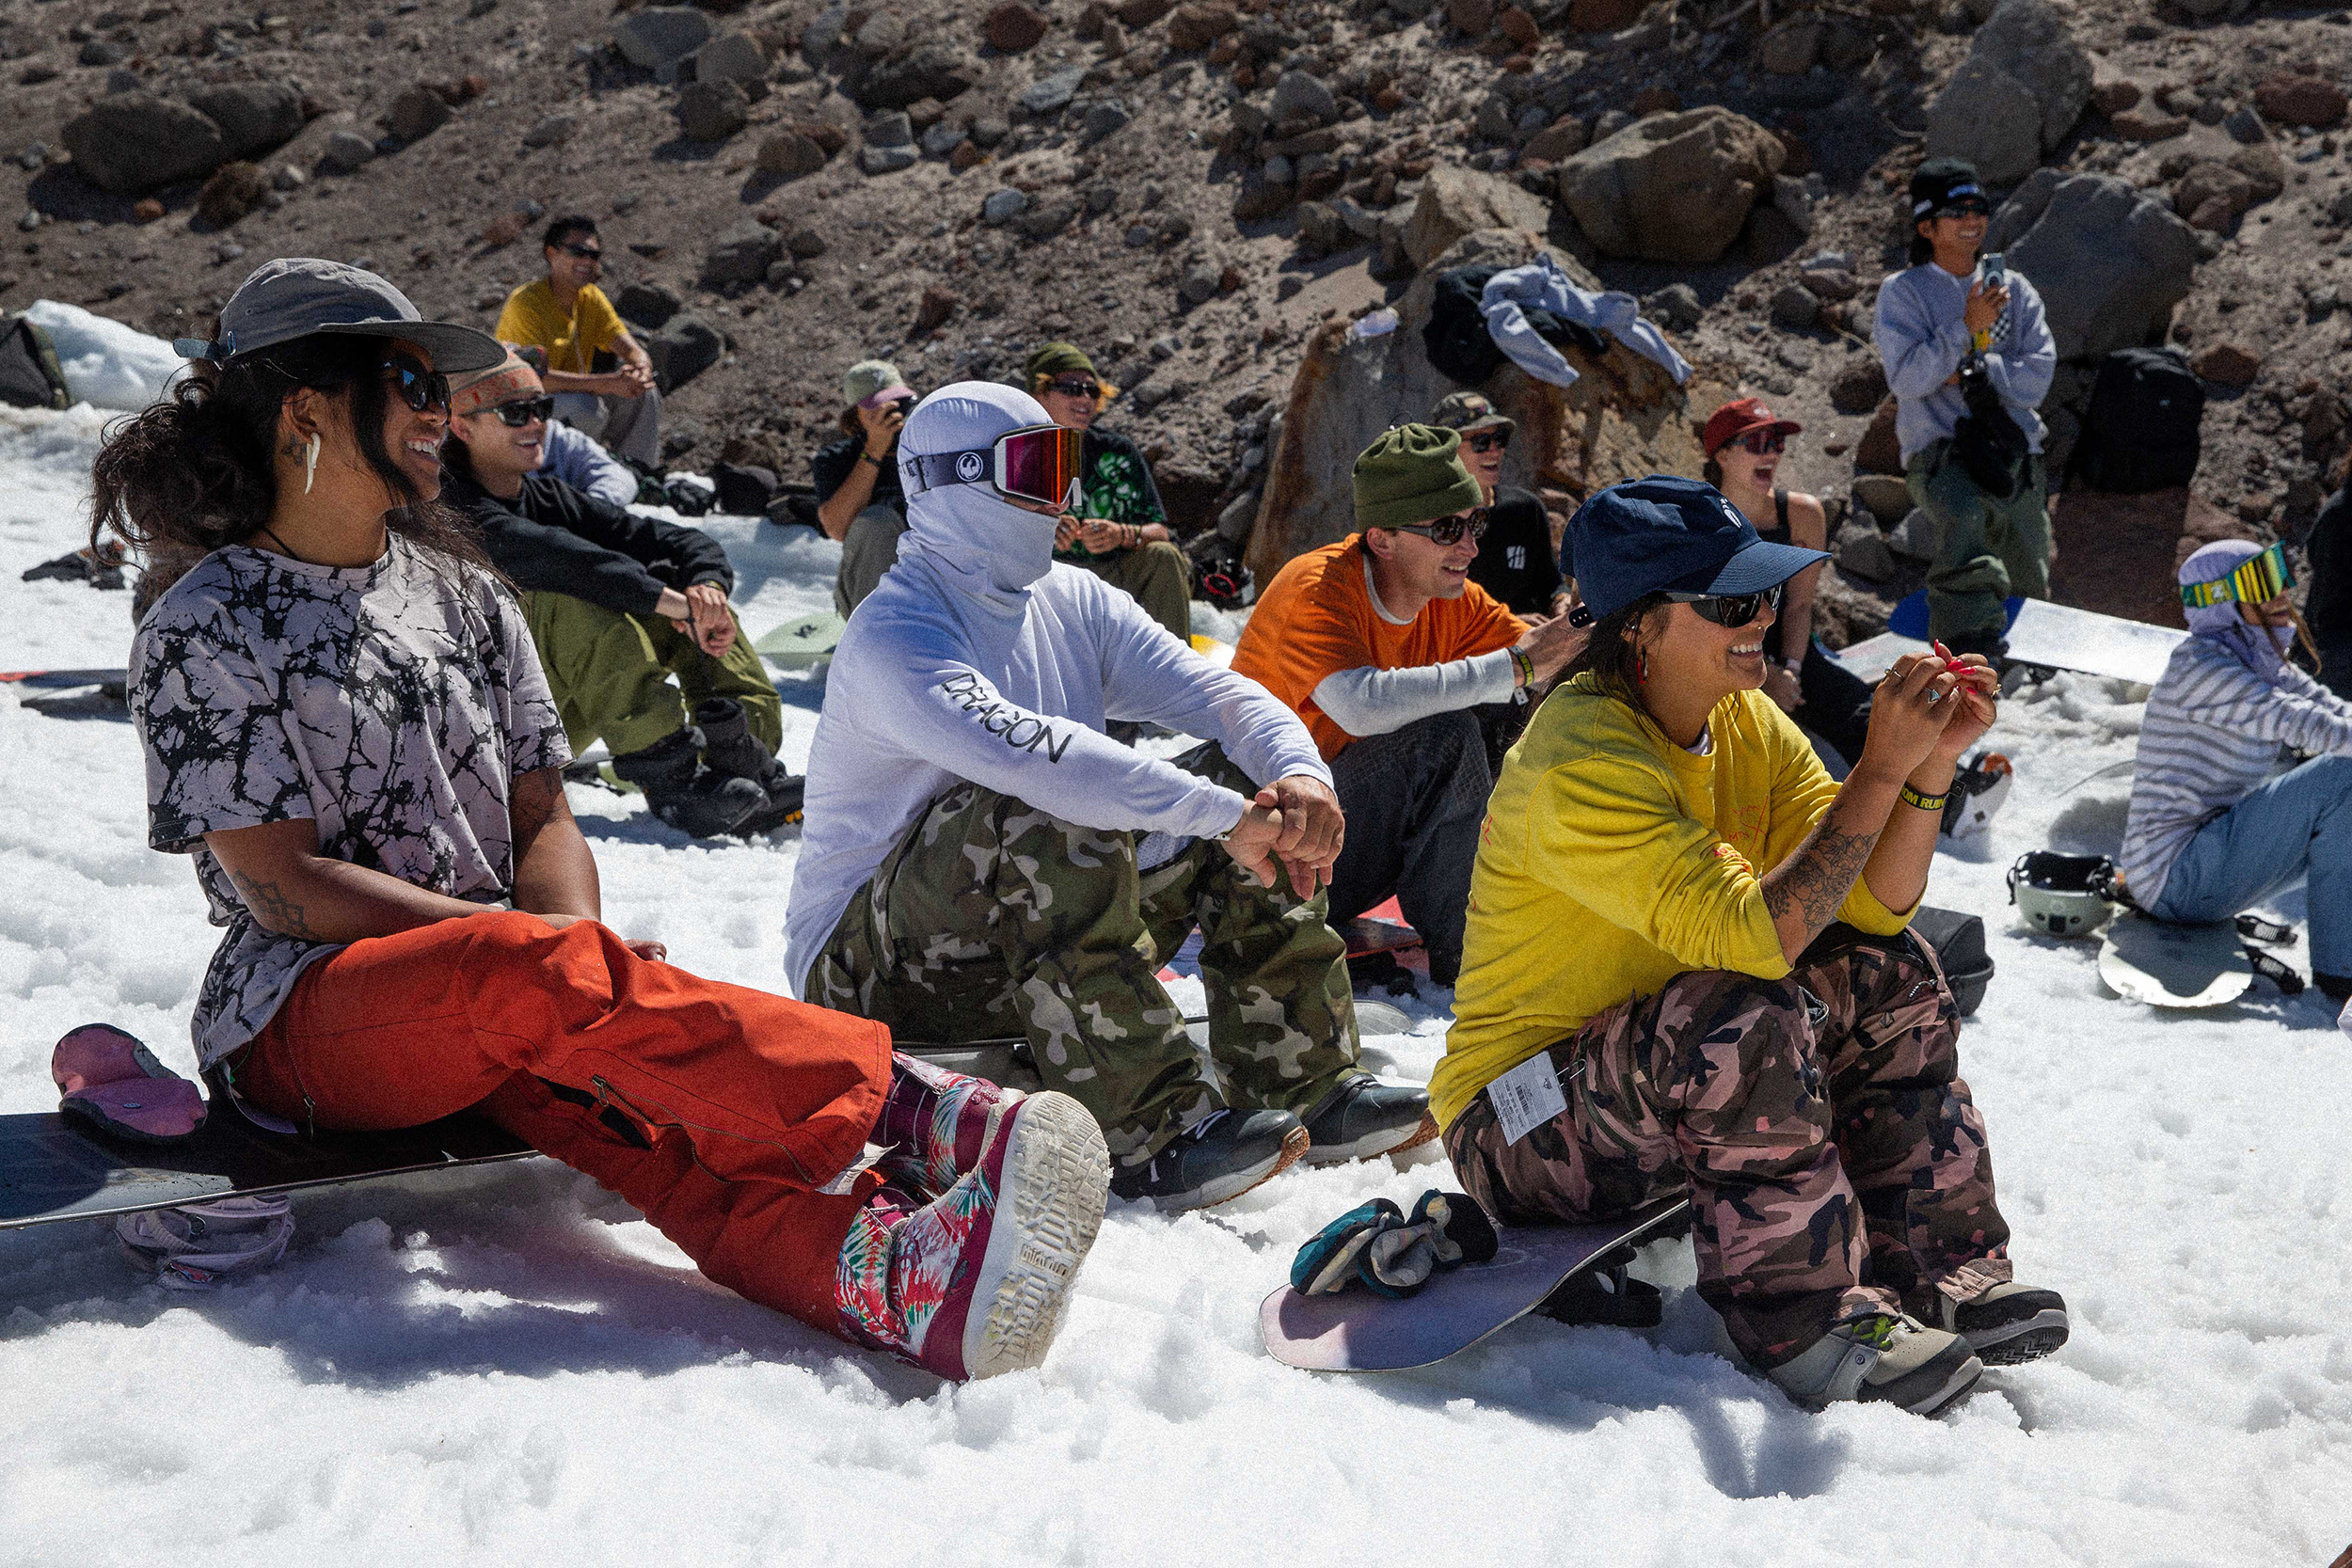 snowboarders hang out together